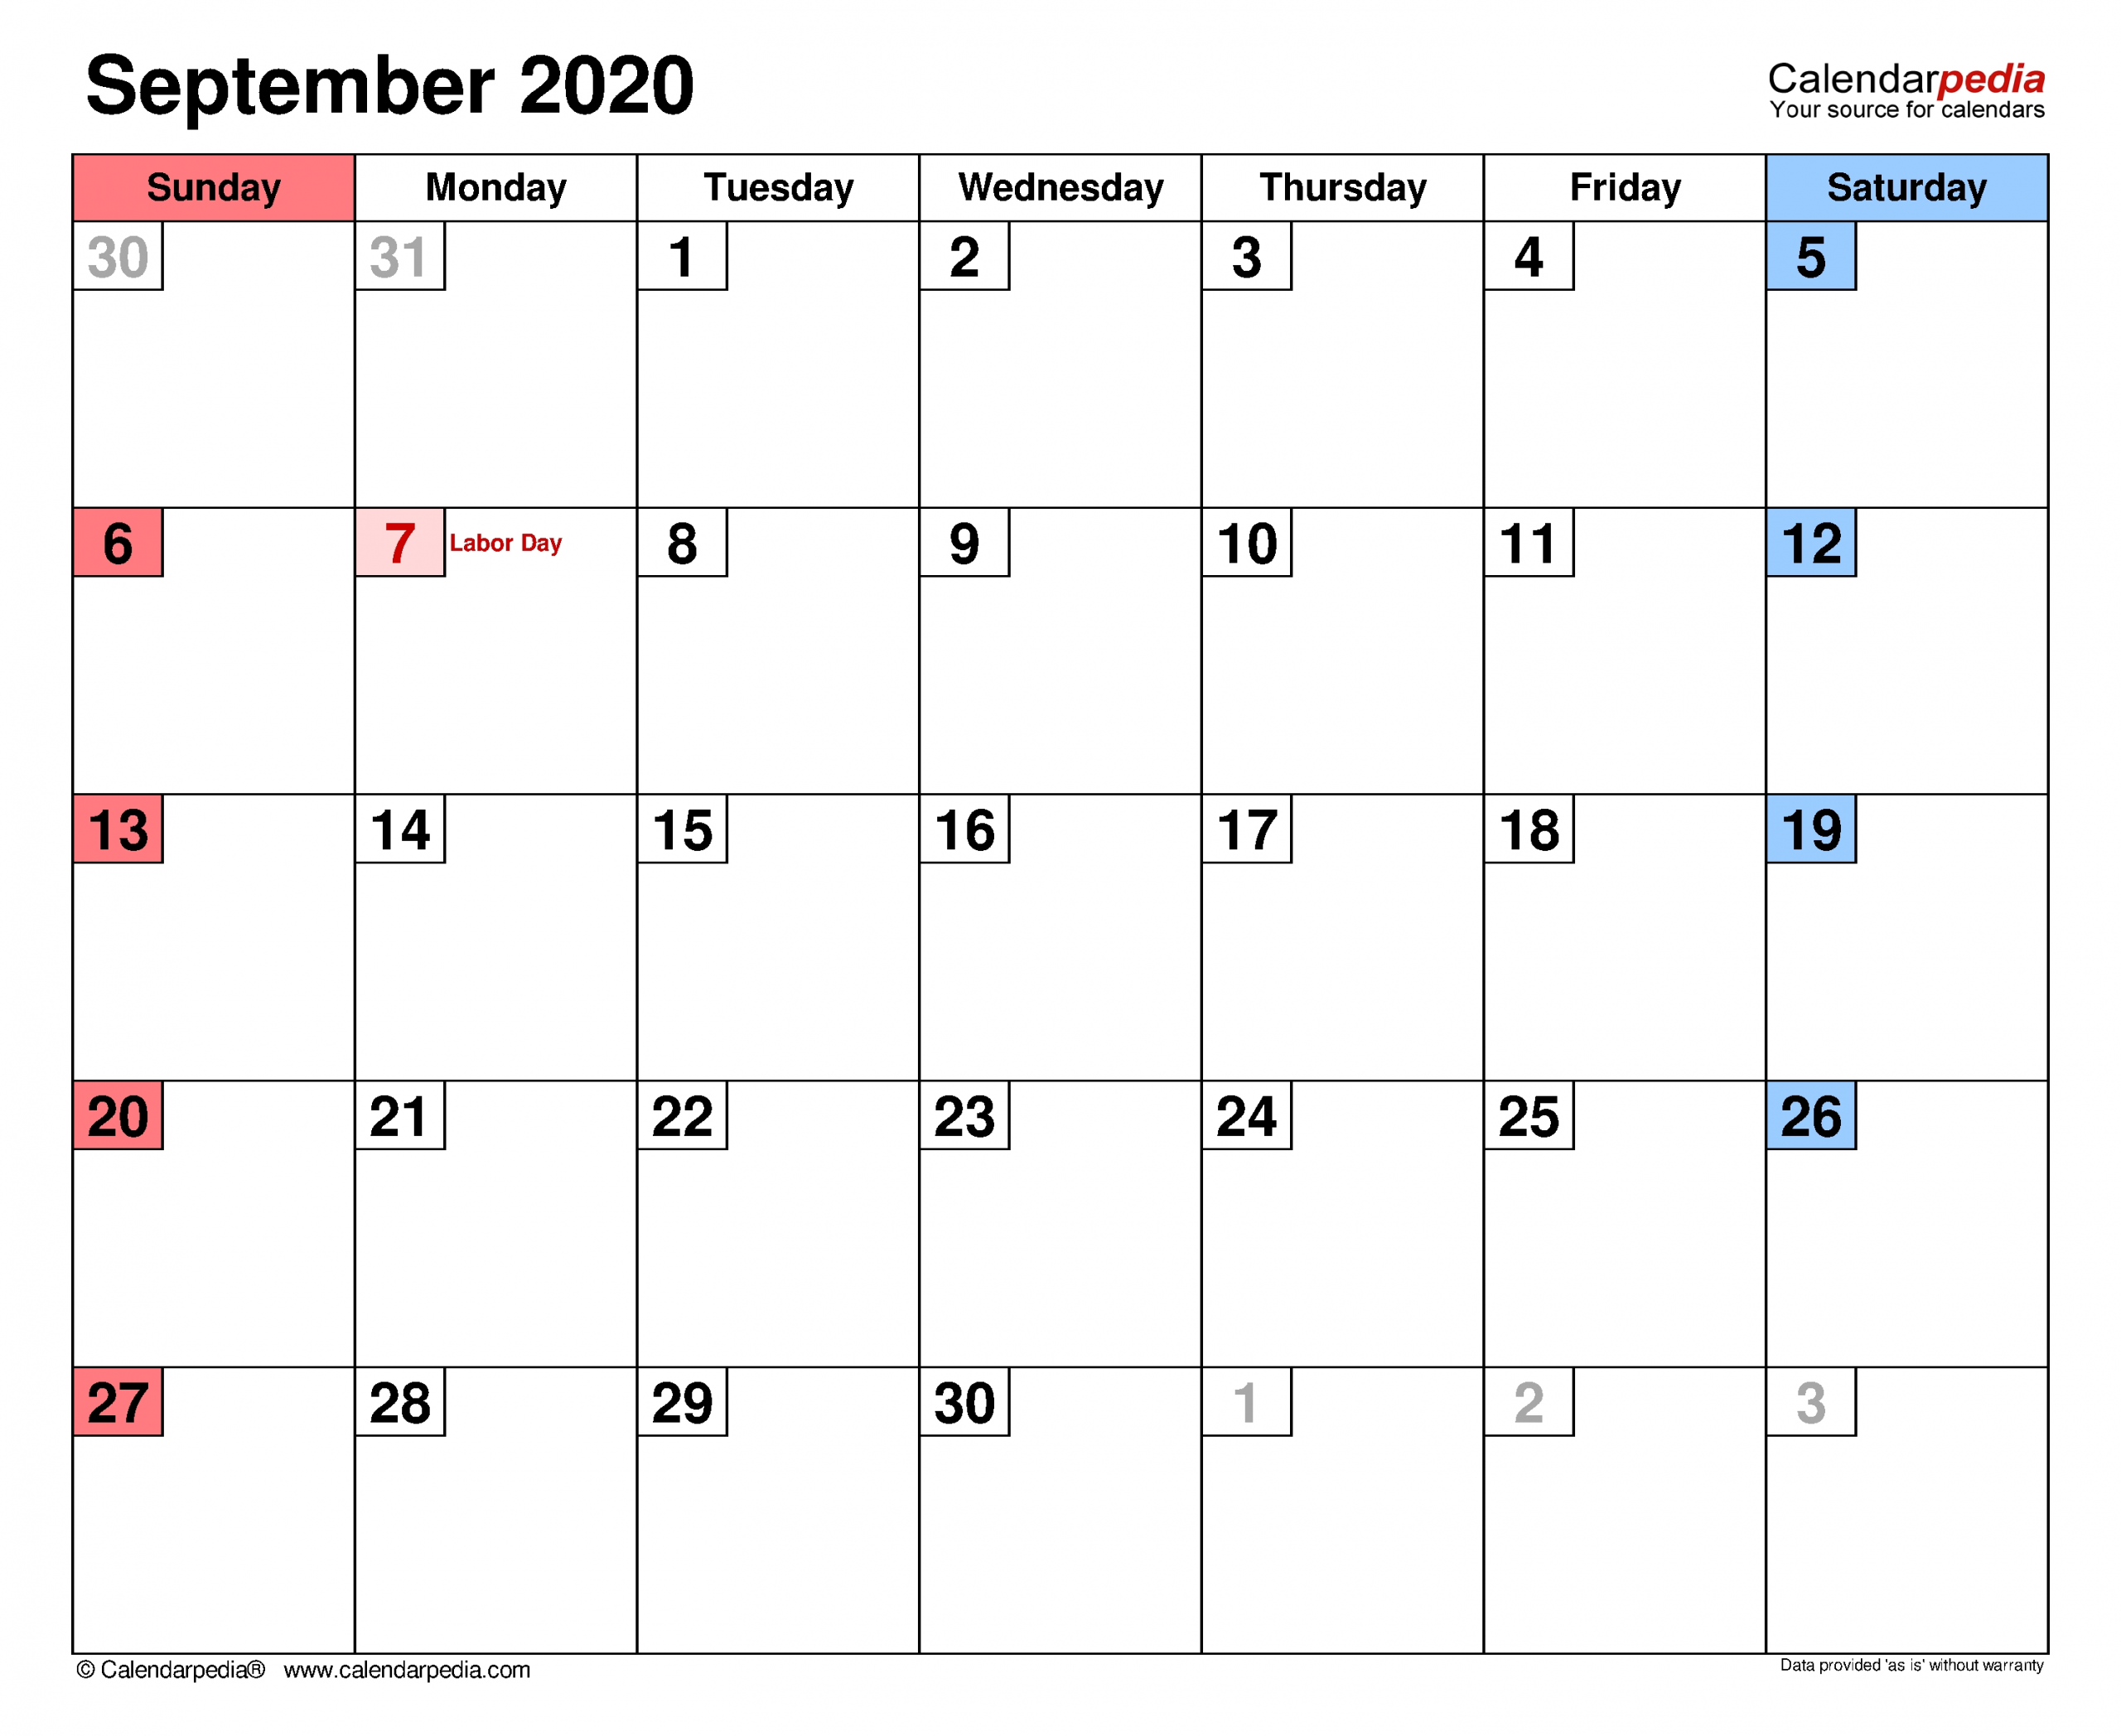 September 2020 Calendar | Templates For Word, Excel And Pdf for 2020 Calendar To Fill In